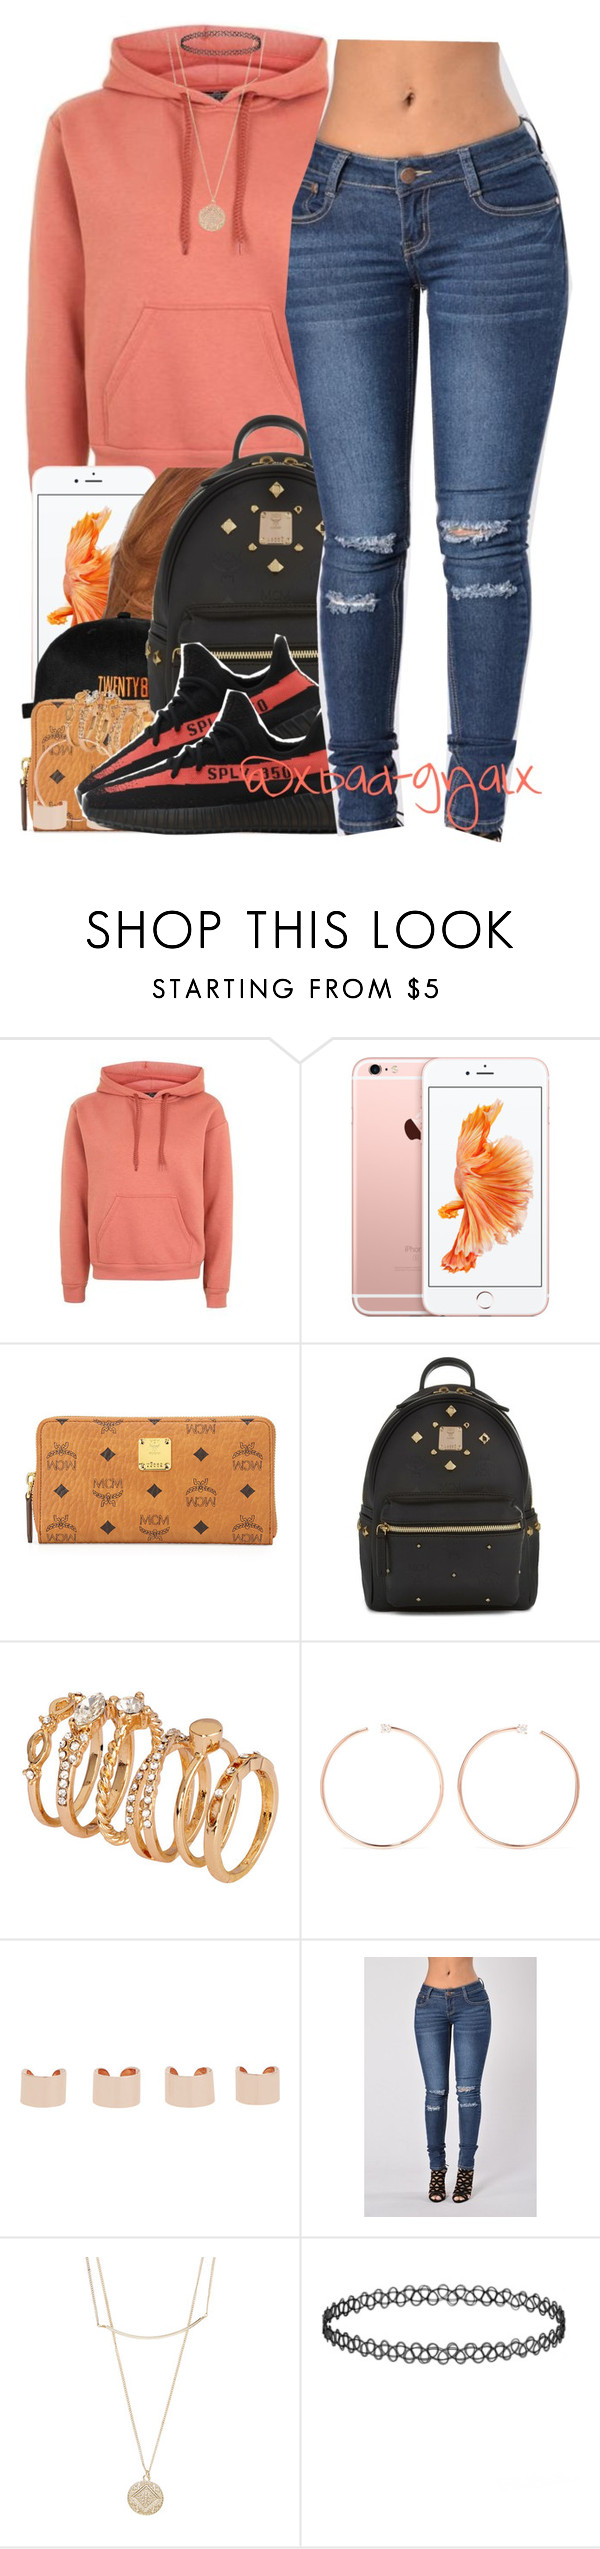 """""""{Last night took an L but, tonight I bounce back}"""" by xbad-gyalx ❤ liked on Polyvore featuring Topshop, MCM, H&M, Anita Ko, Maison Margiela and Accessorize"""